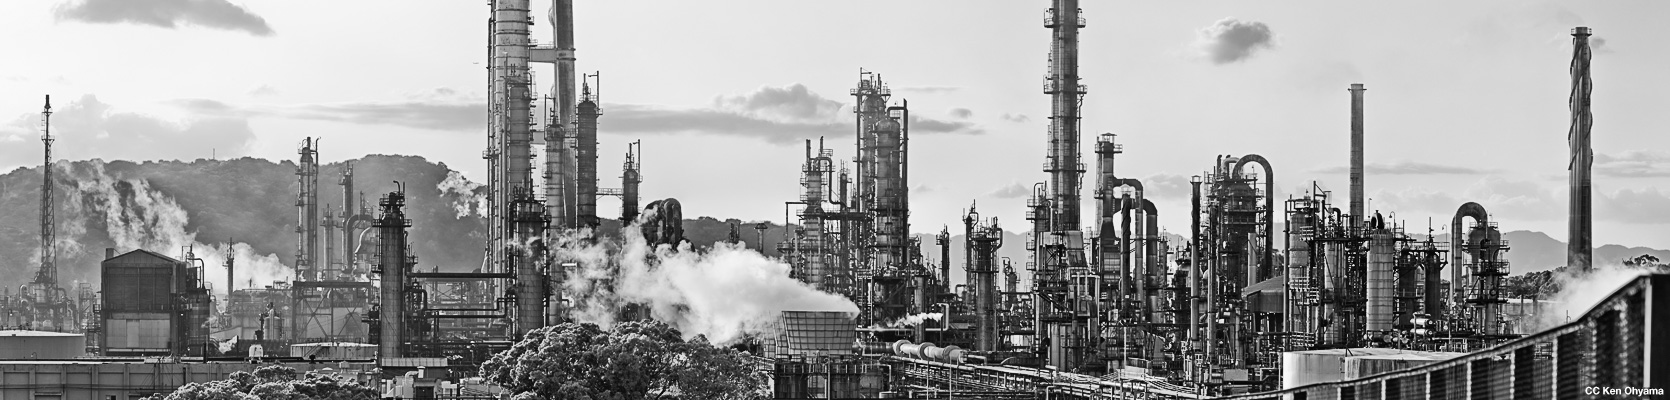 Sector Petrochemicals & Refineries